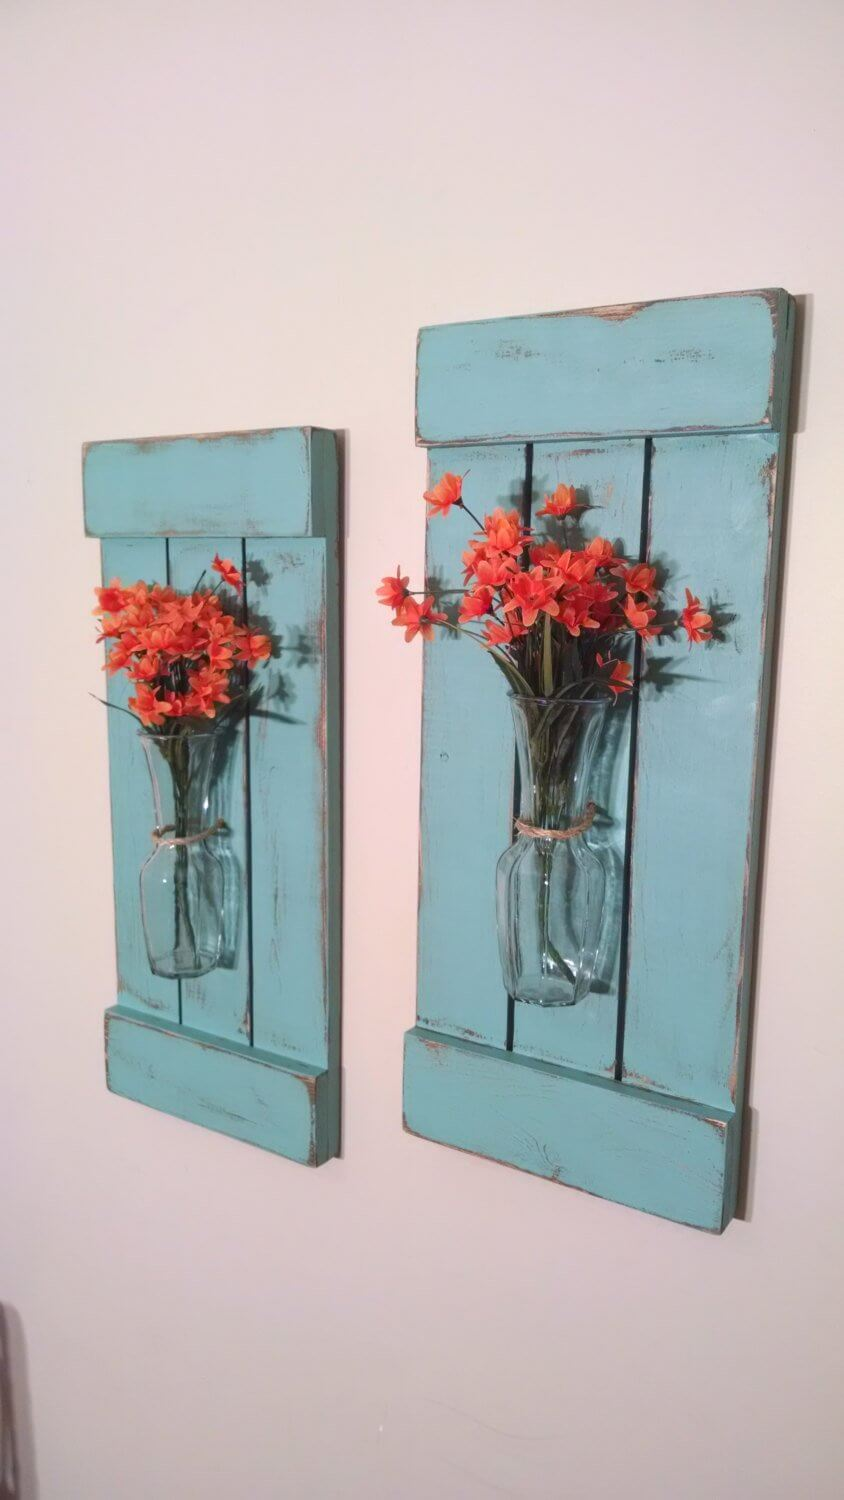 Retro Flower Vase Wall Hanging with Shutters